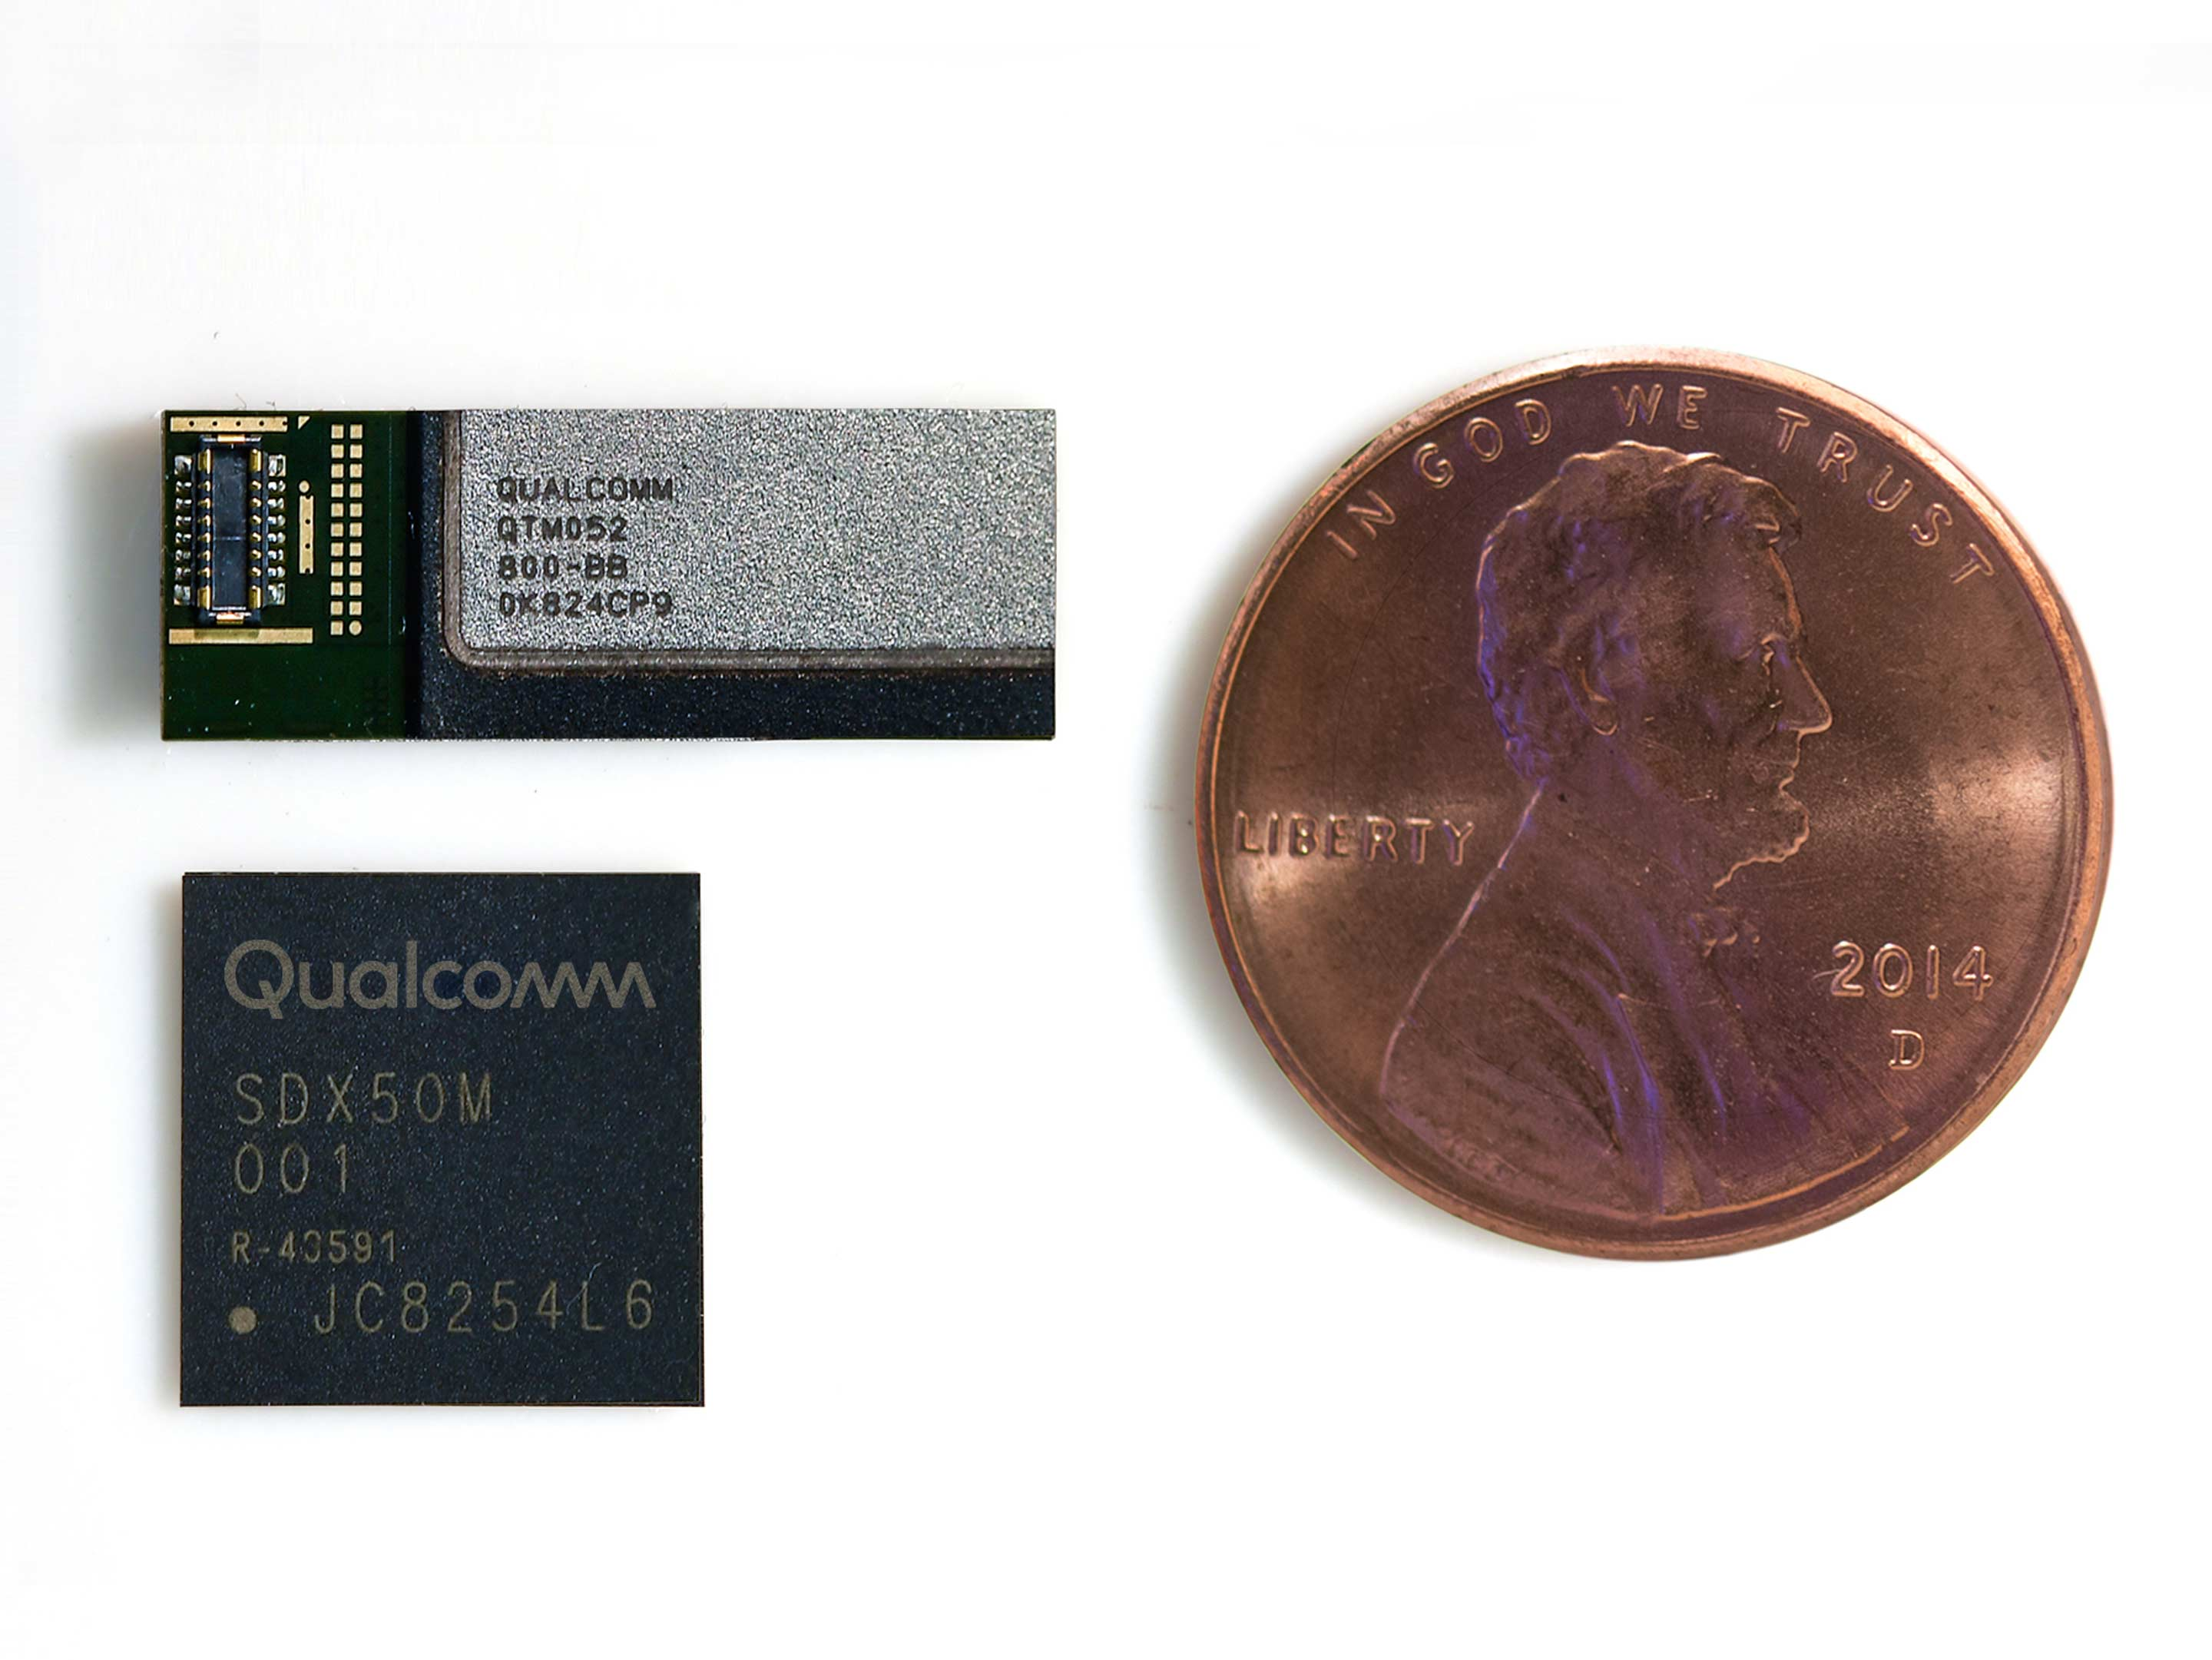 The size of the X50 modem and QTM052 antenna module compared to an American penny